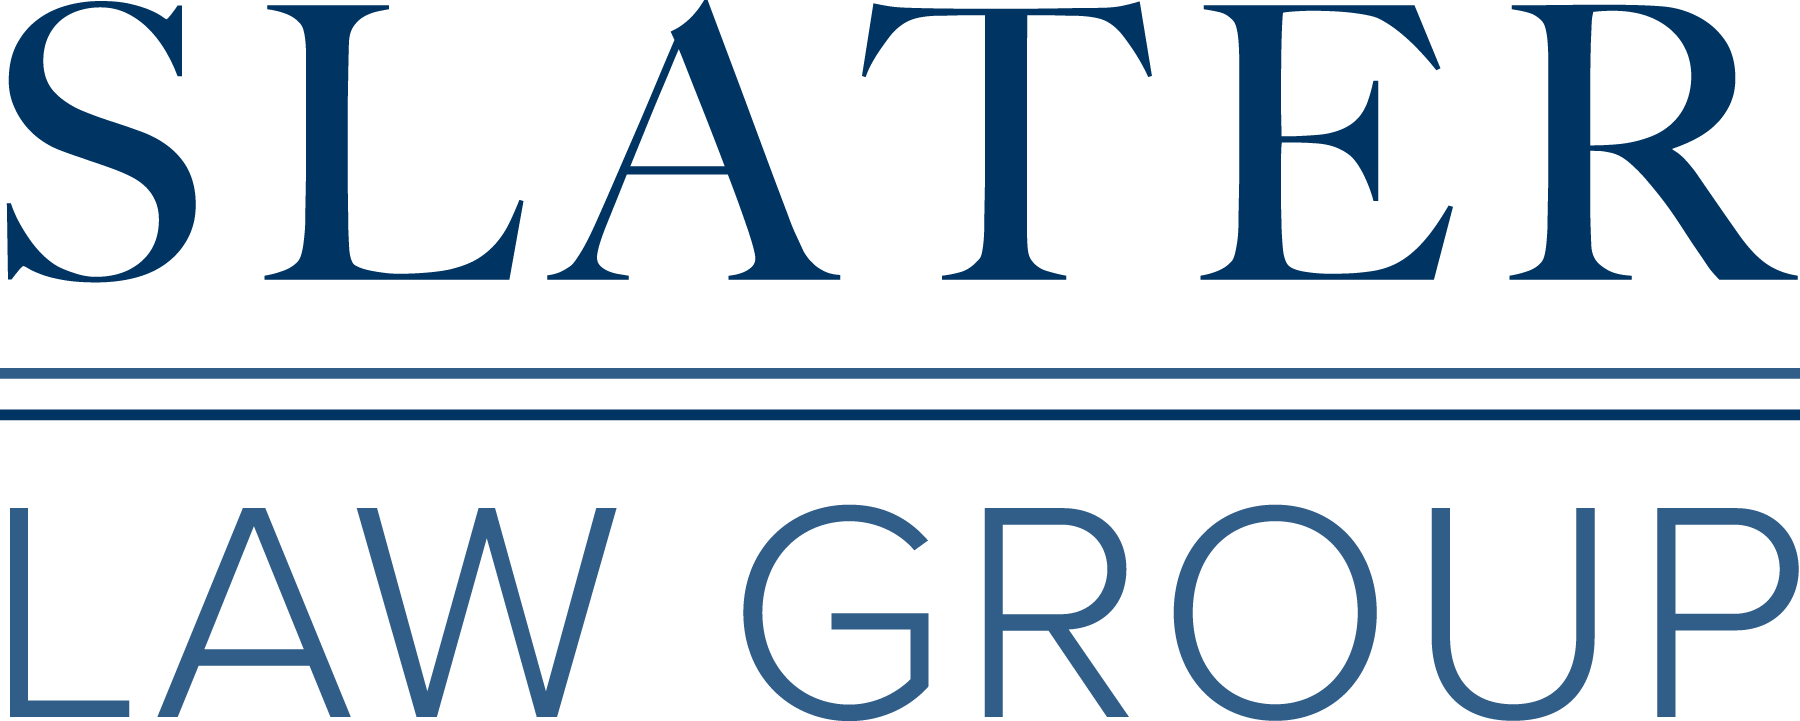 Slater Law Group, A Professional Corporation